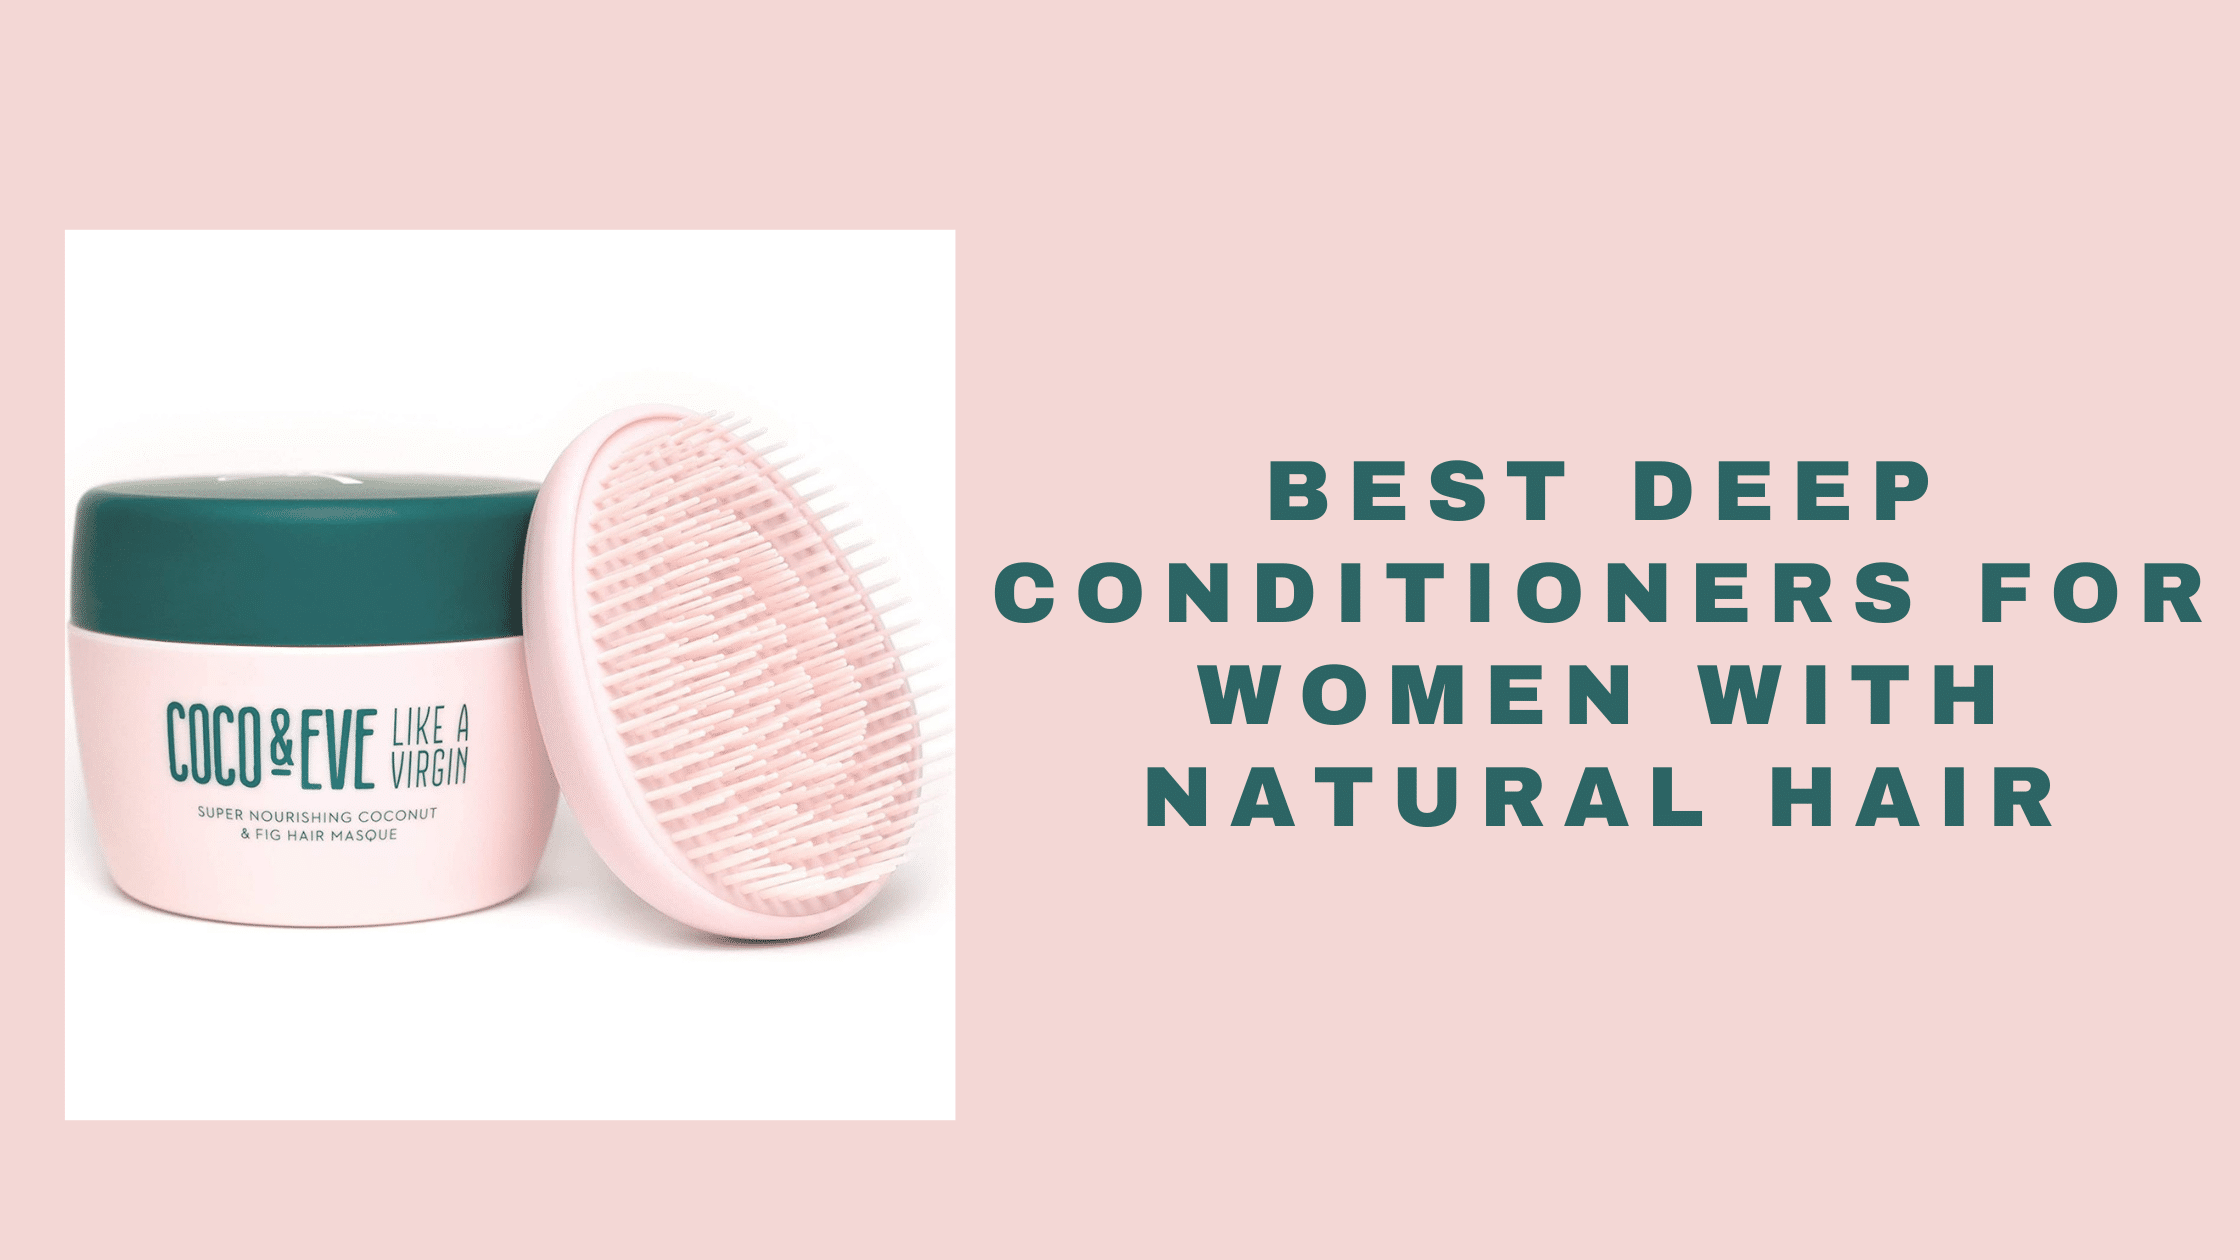 17 Best Deep Conditioners For Women With Natural Hair